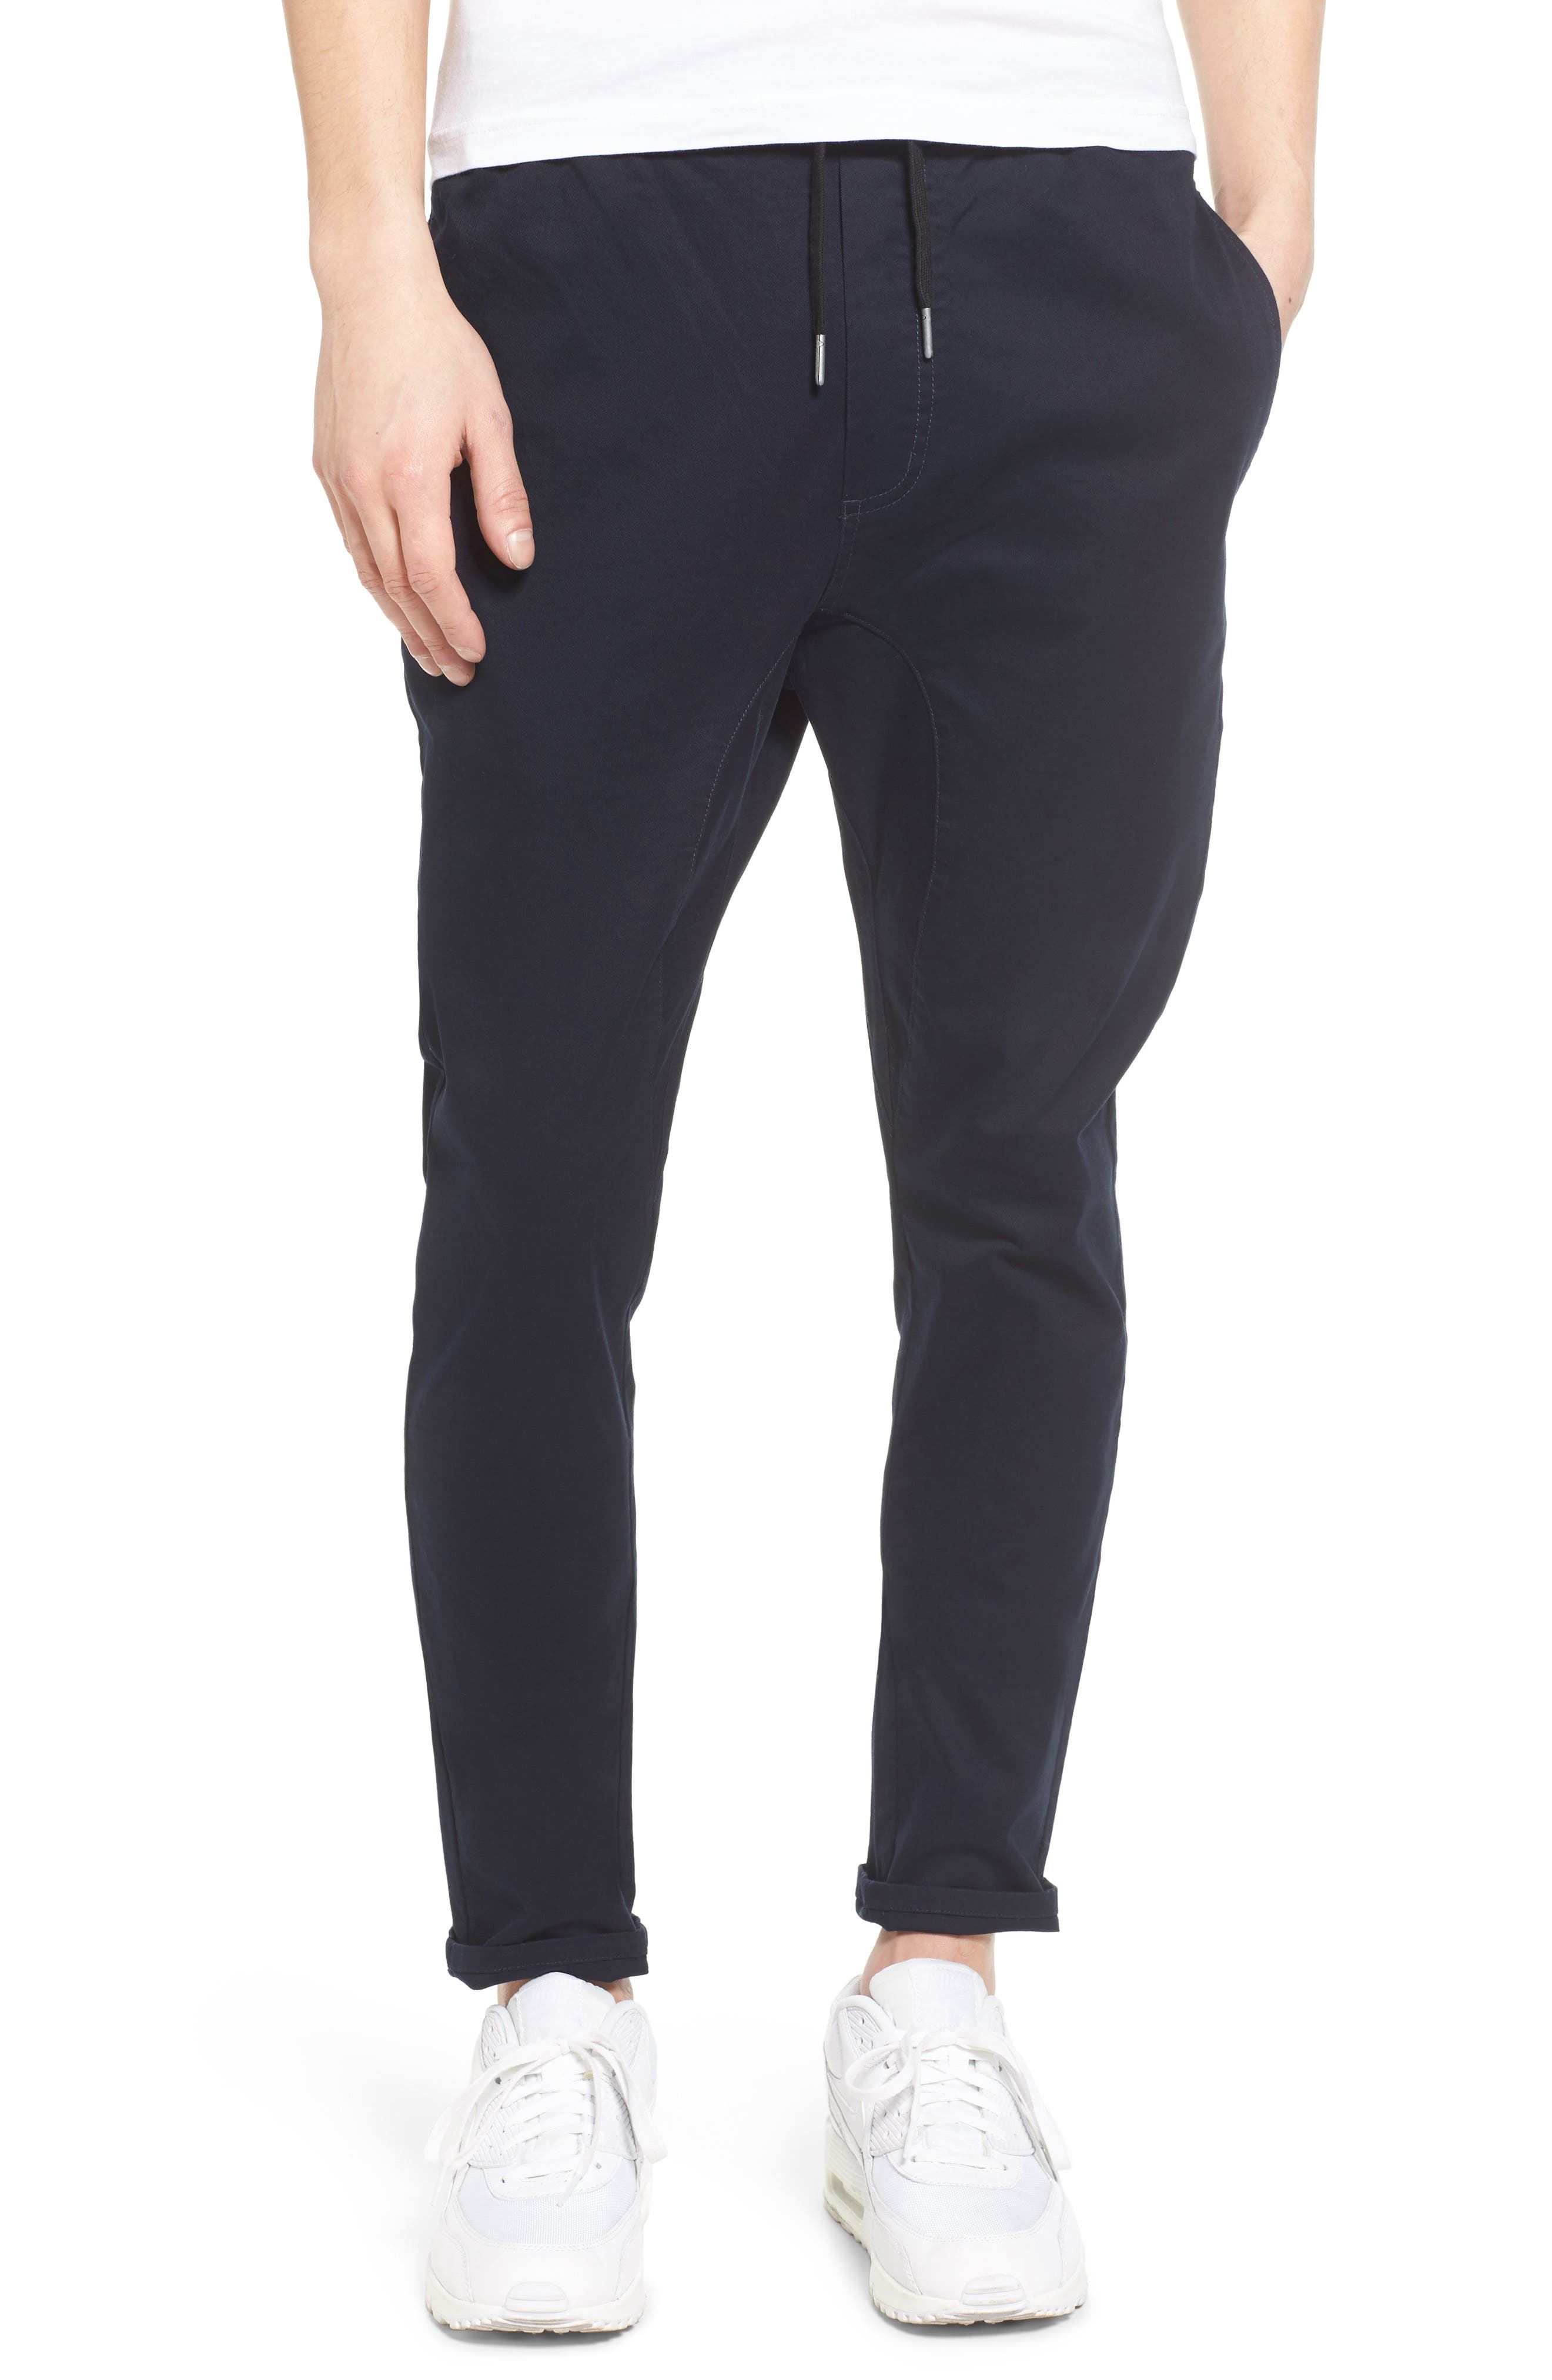 Salerno Stretch Woven Jogger Pants,                         Main,                         color, Navy